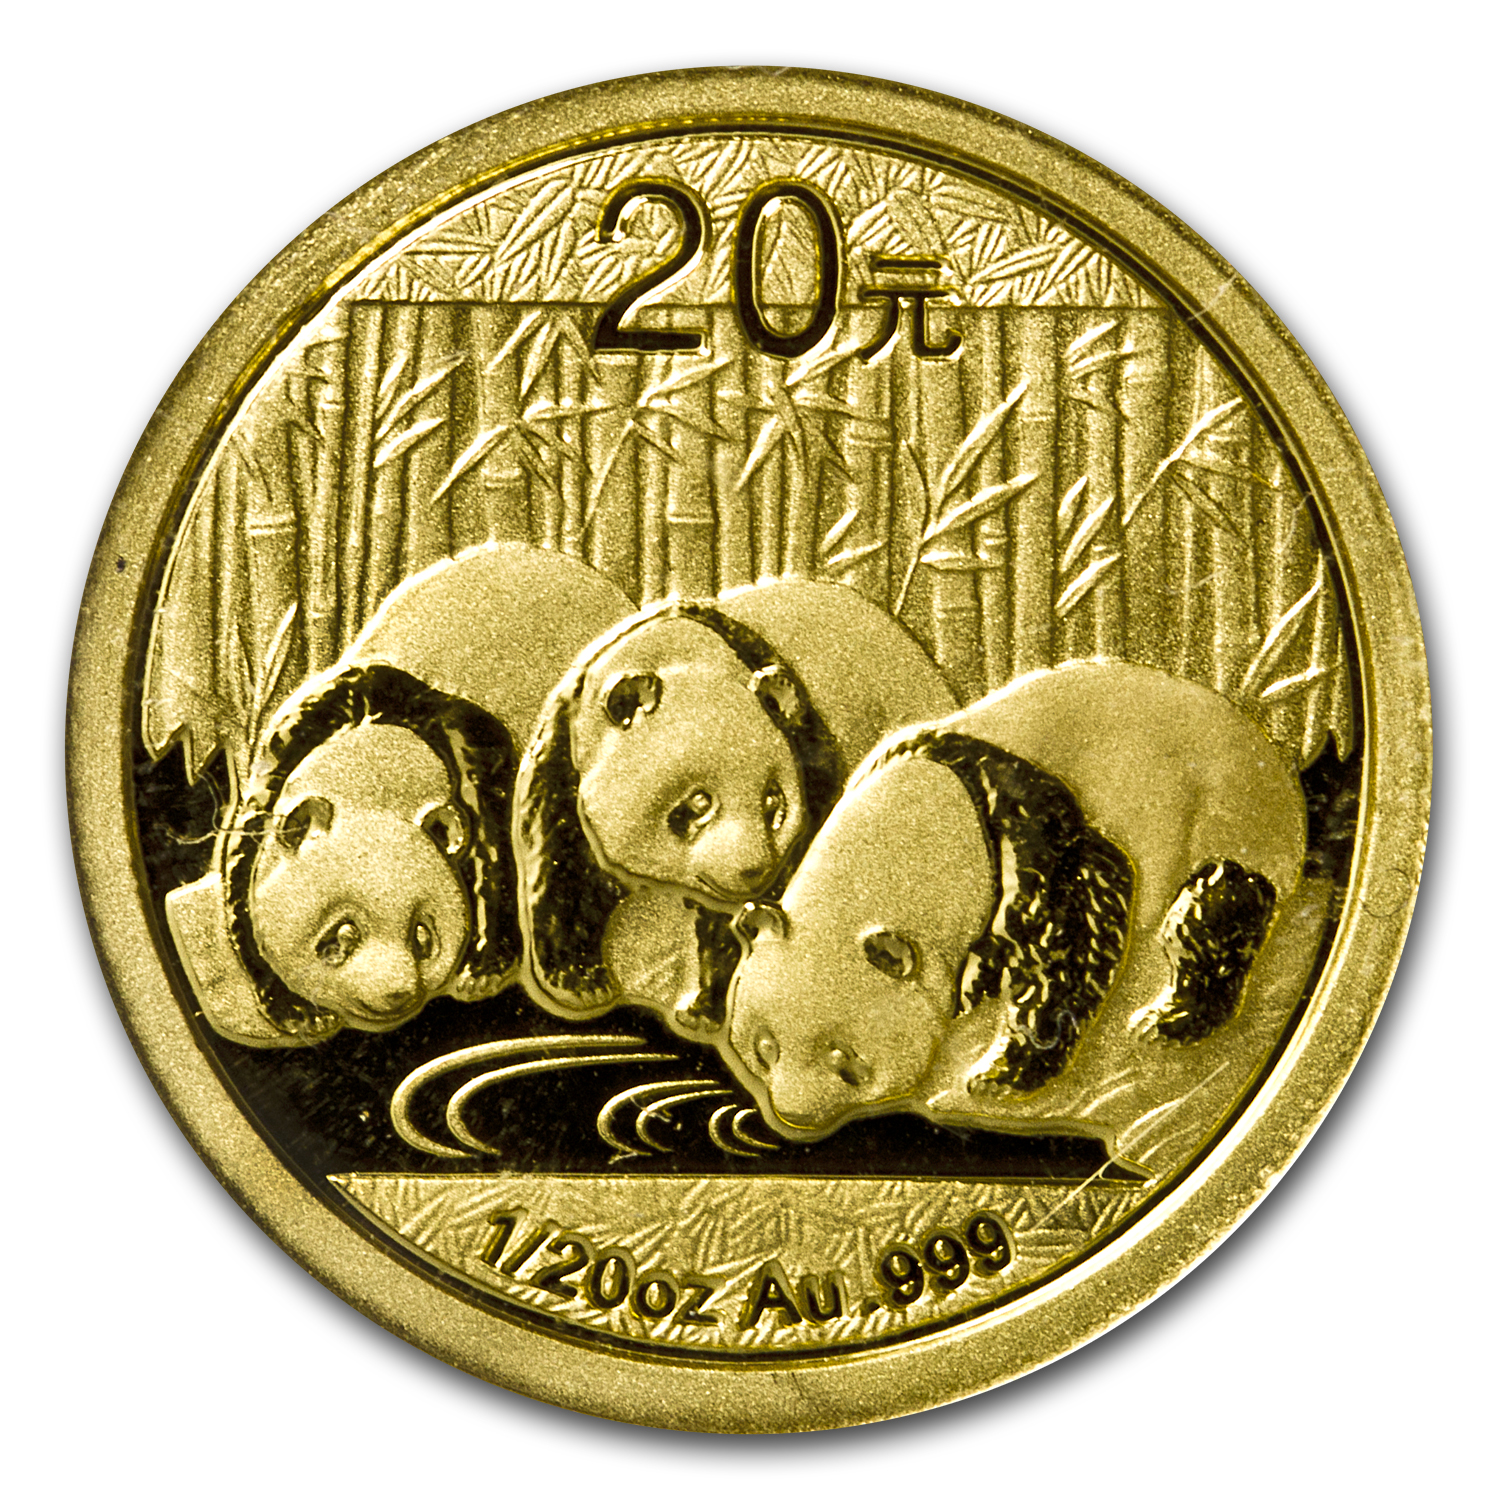 2013 China 1/20 oz Gold Panda BU (Sealed)